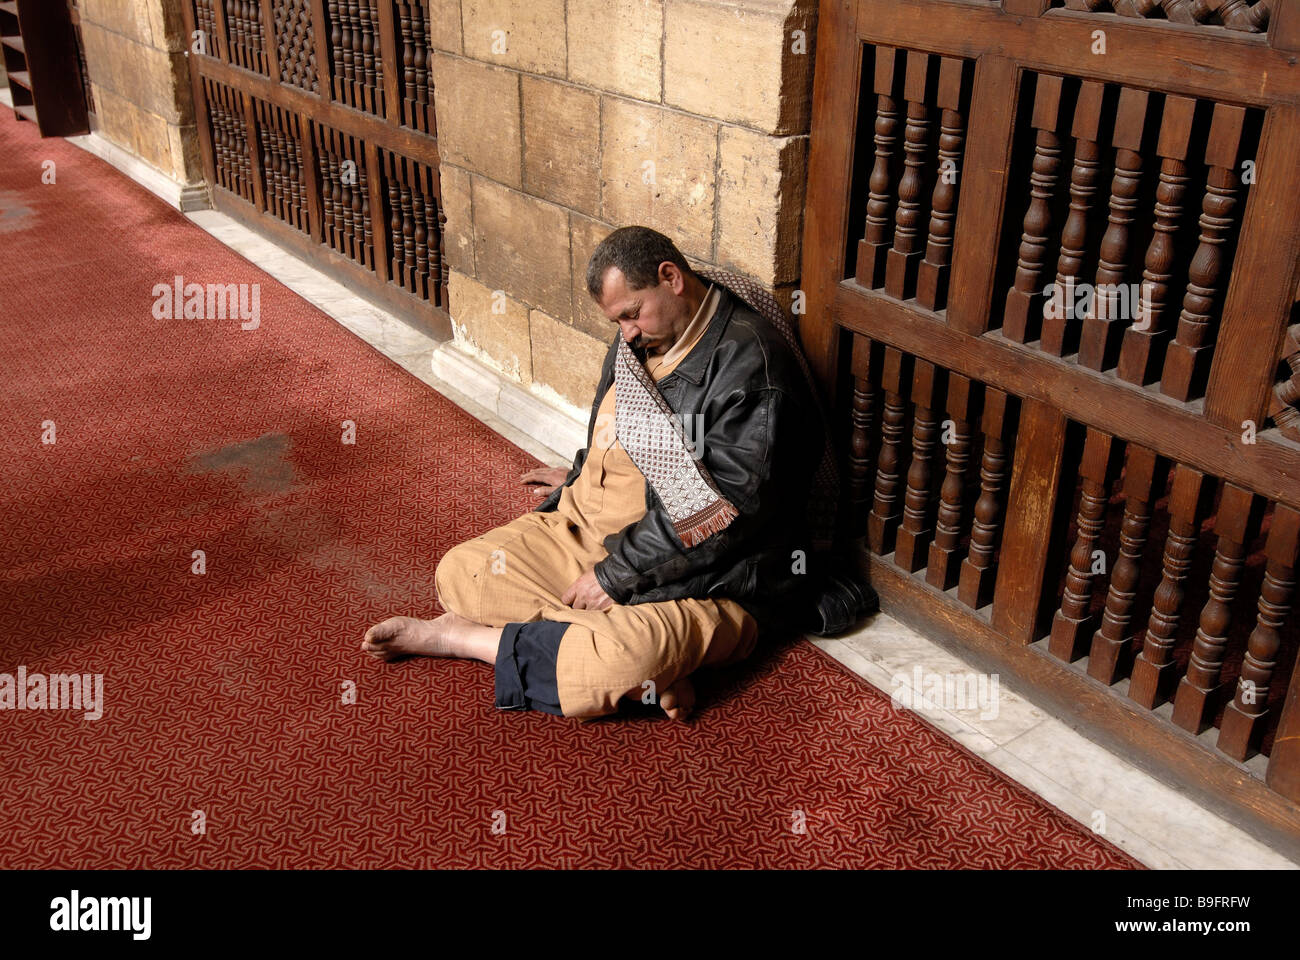 Sits Egypt Cairo Al Azhar mosque man sleeping people man Muslim creditors cross-legged resting tiredness exhaustion - Stock Image